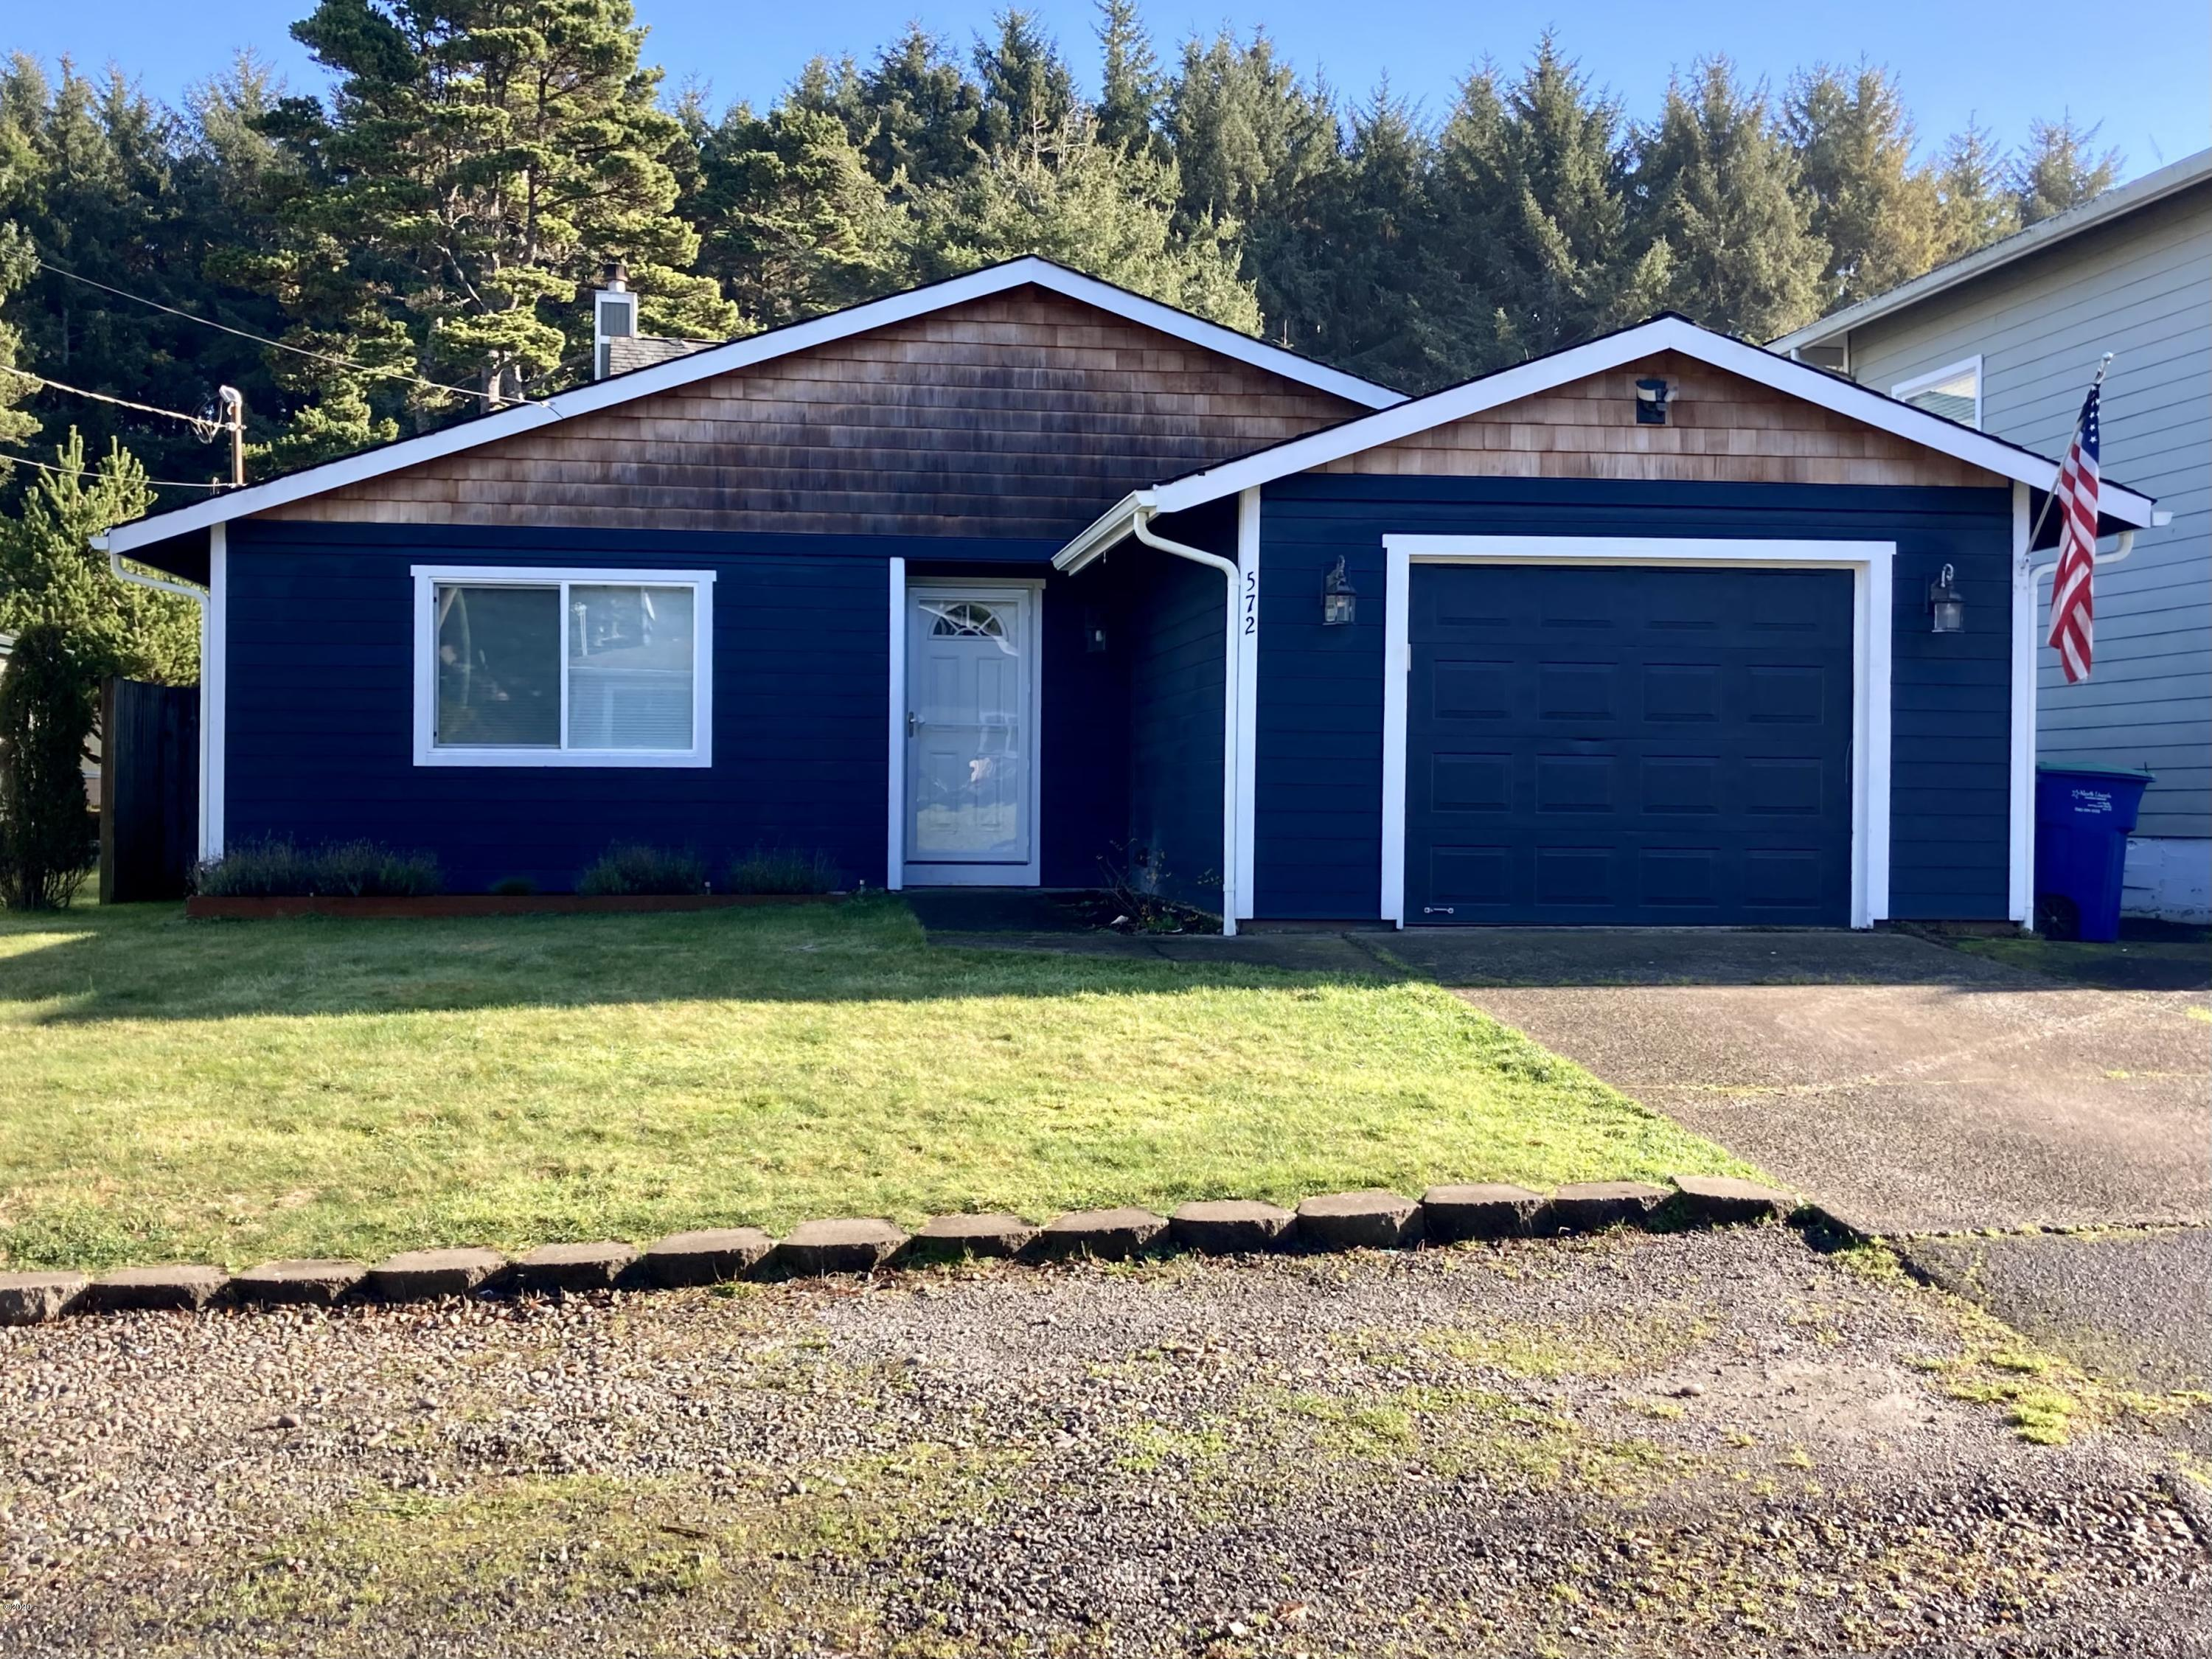 572 SE Jetty Ave, Lincoln City, OR 97367 - Striking curb appeal